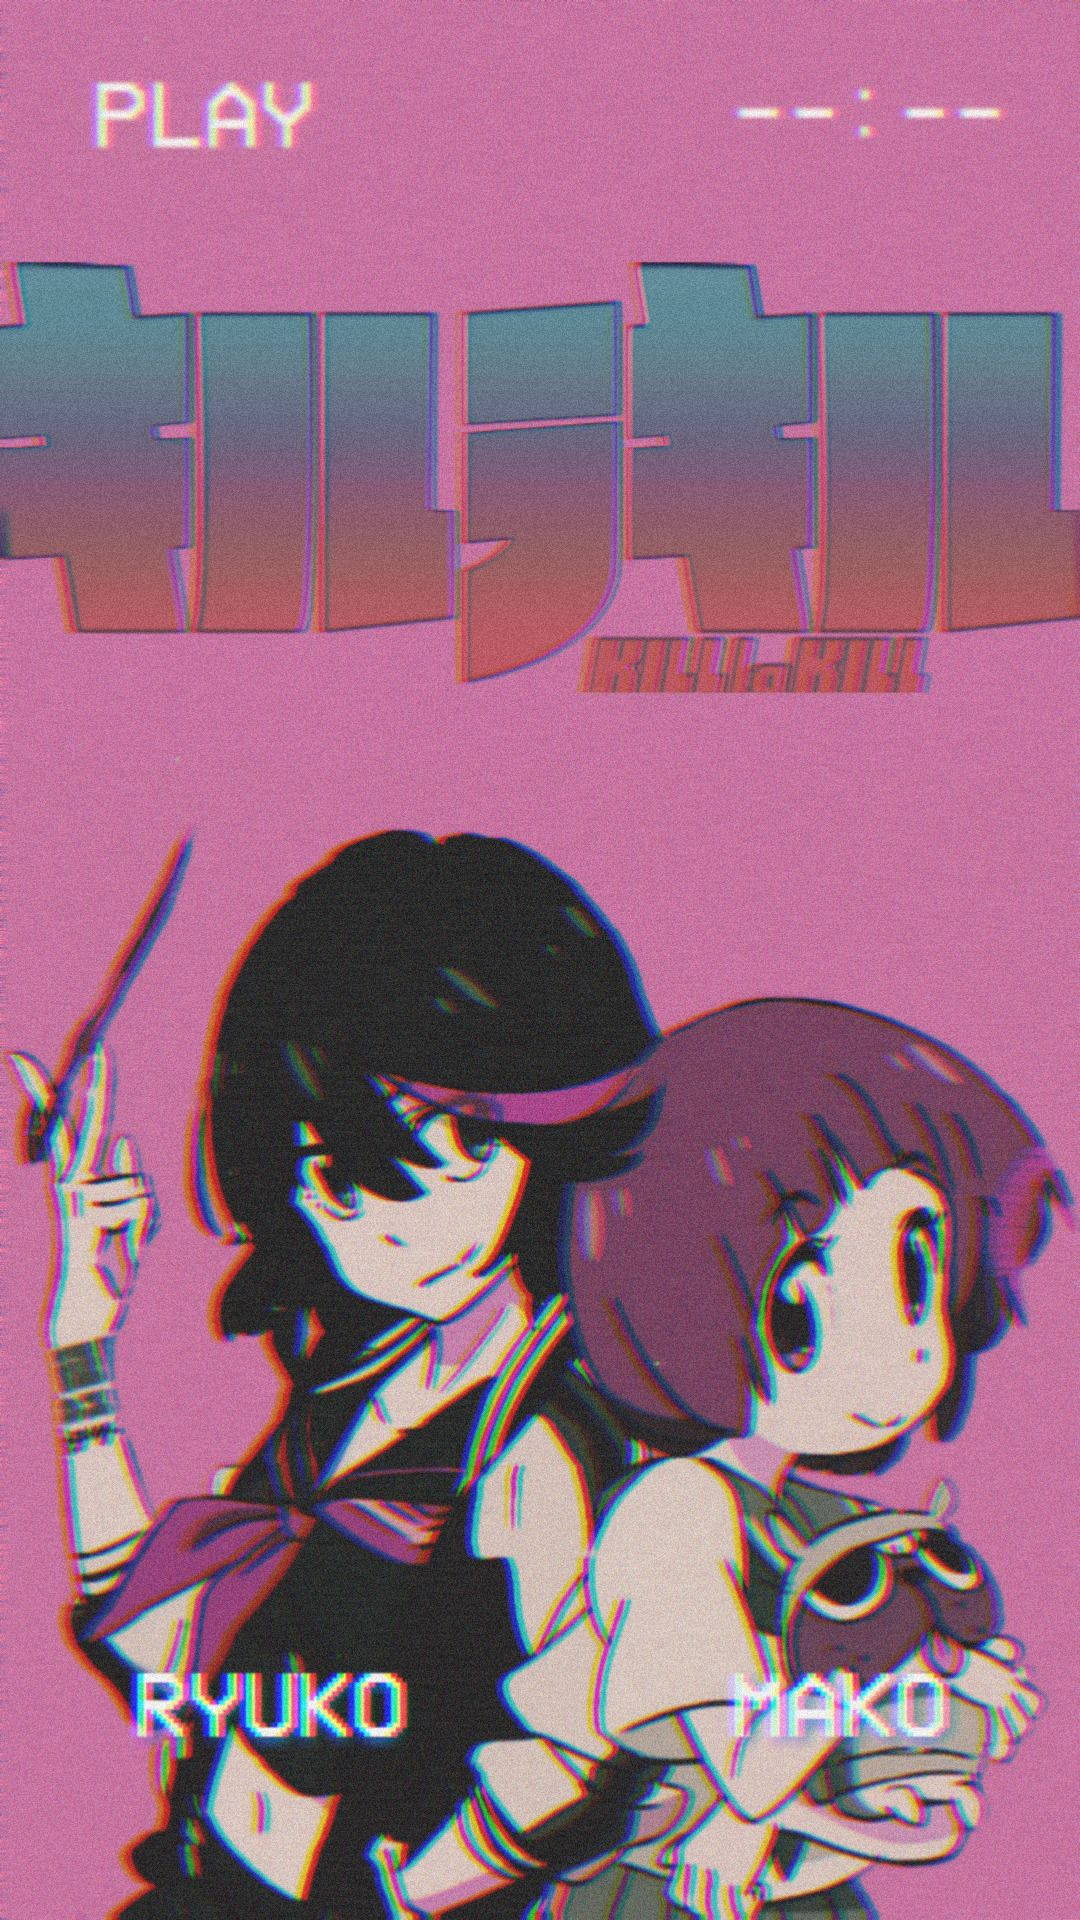 Retro Anime Aesthetic Wallpapers Top Free Retro Anime Aesthetic